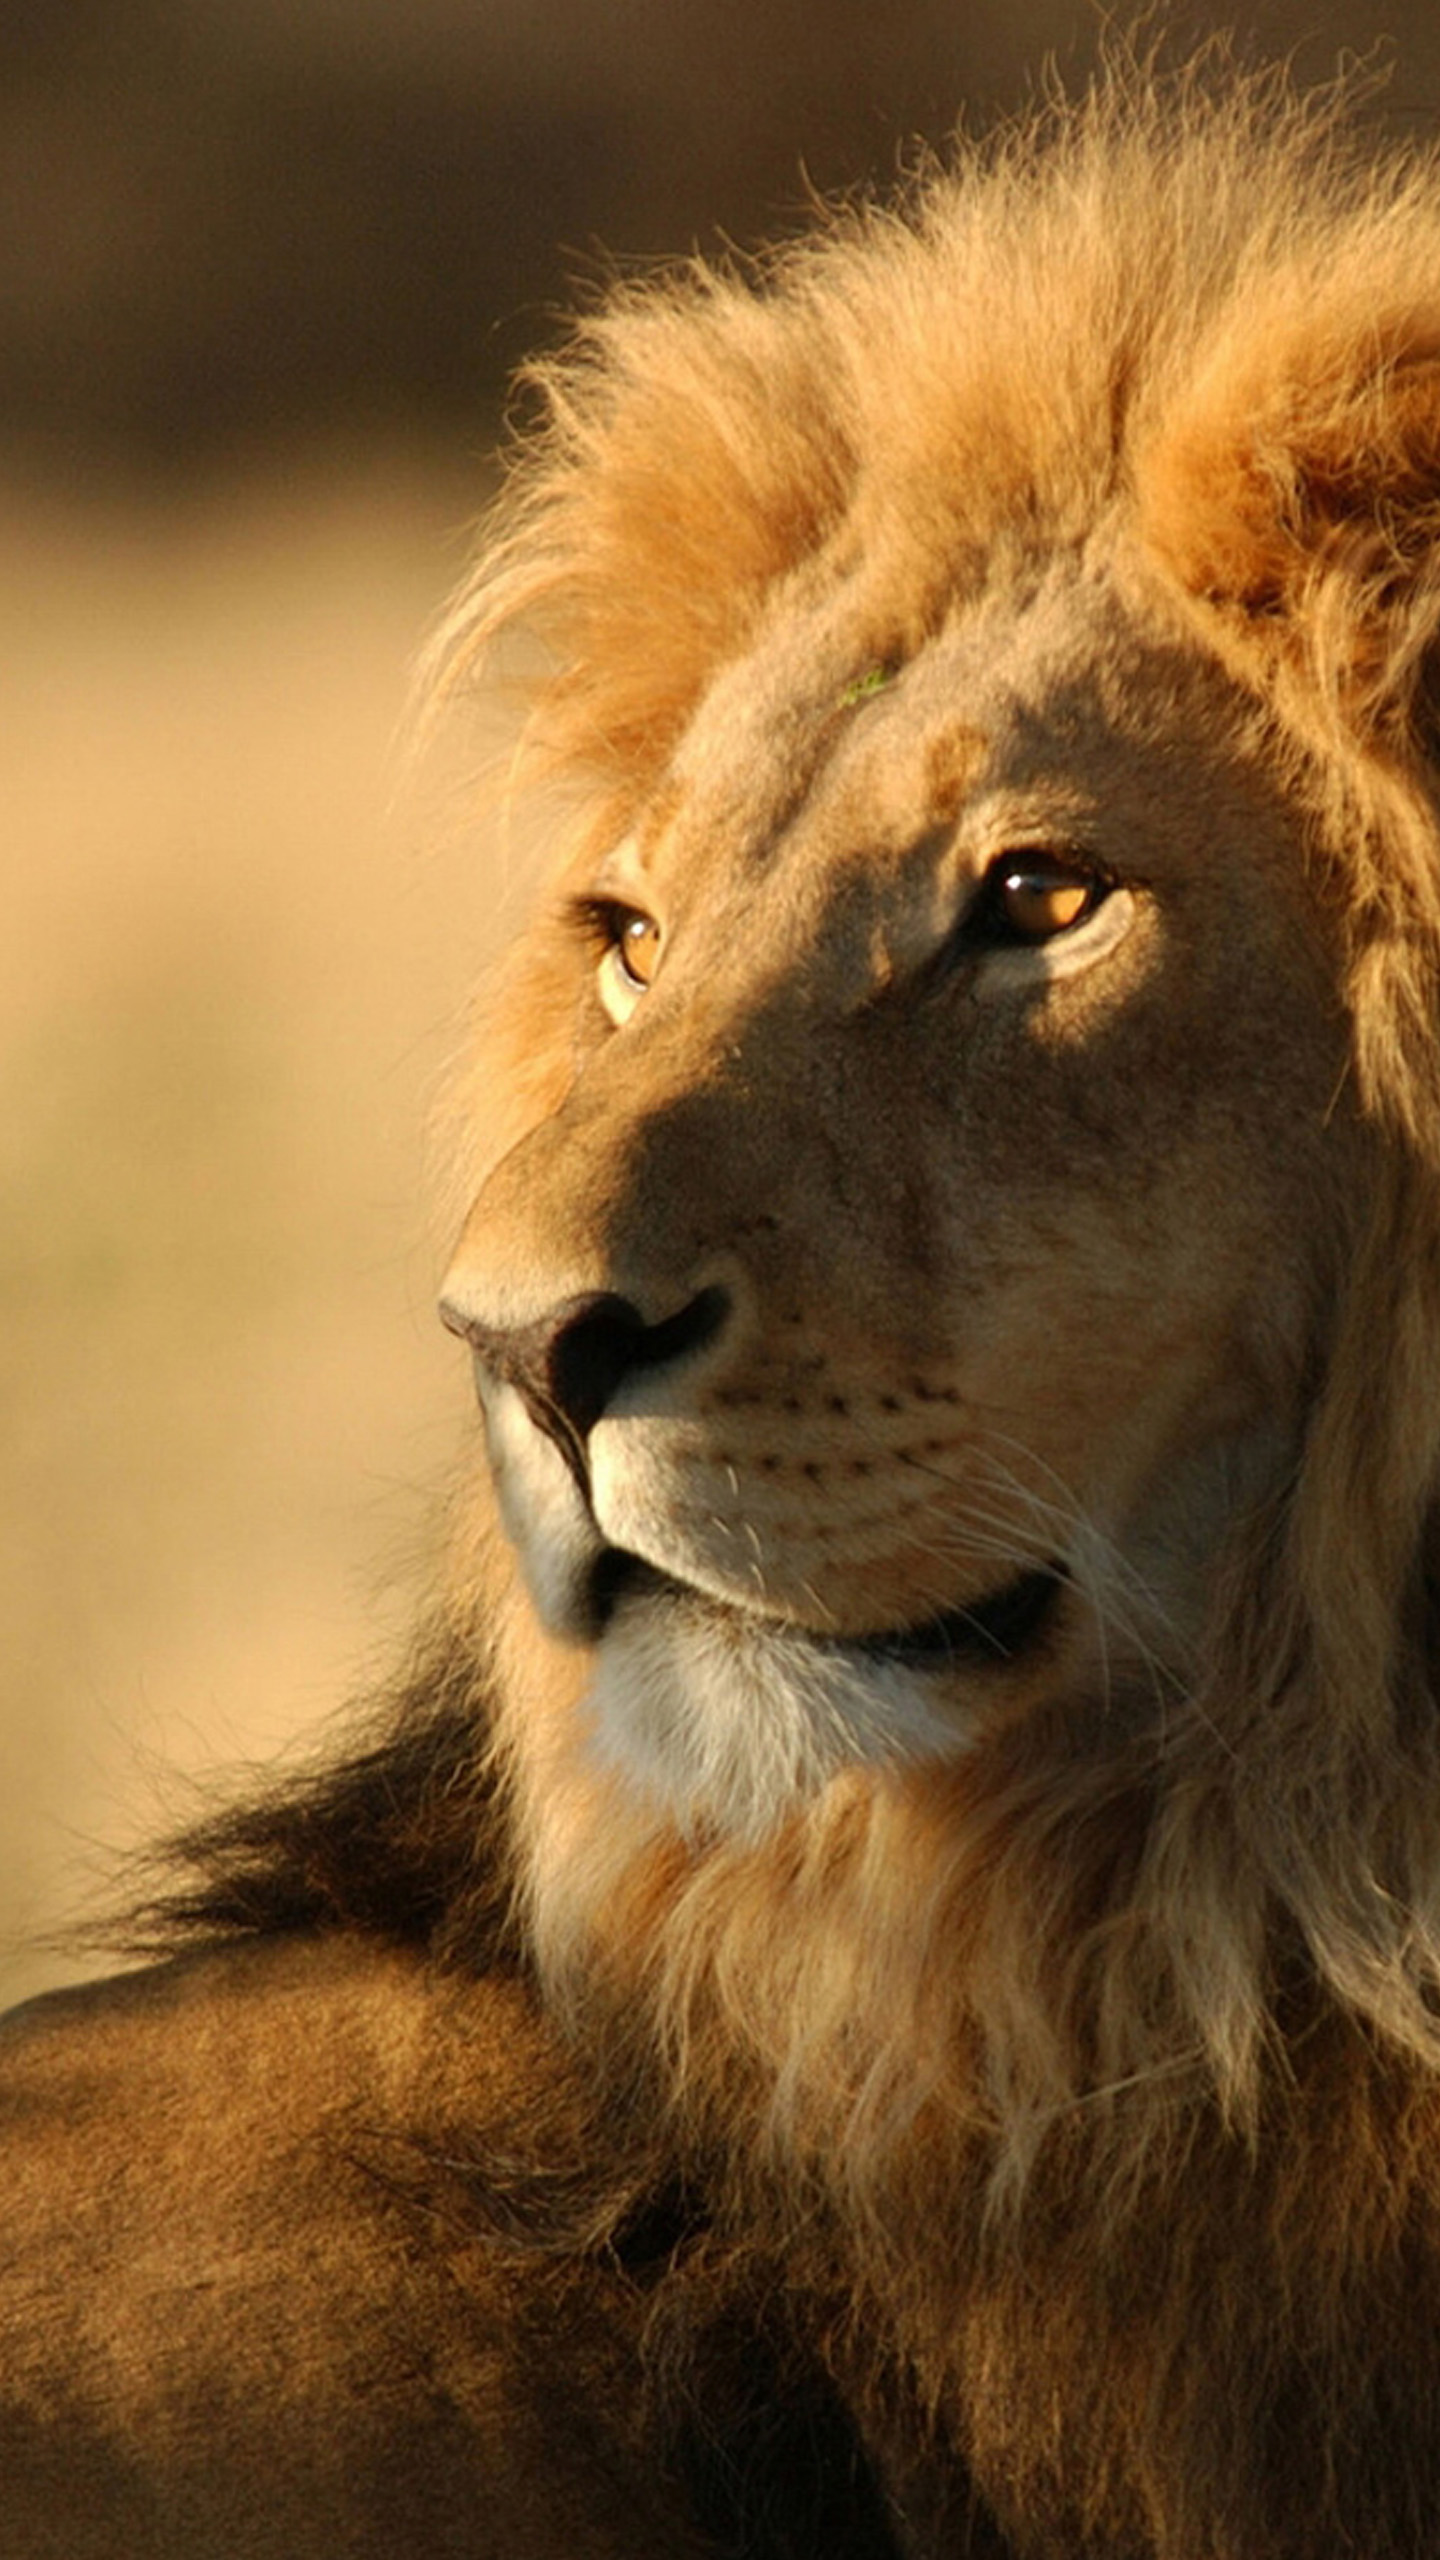 Lion Animal Wallpapers - Iphone Lion Wallpaper Hd , HD Wallpaper & Backgrounds